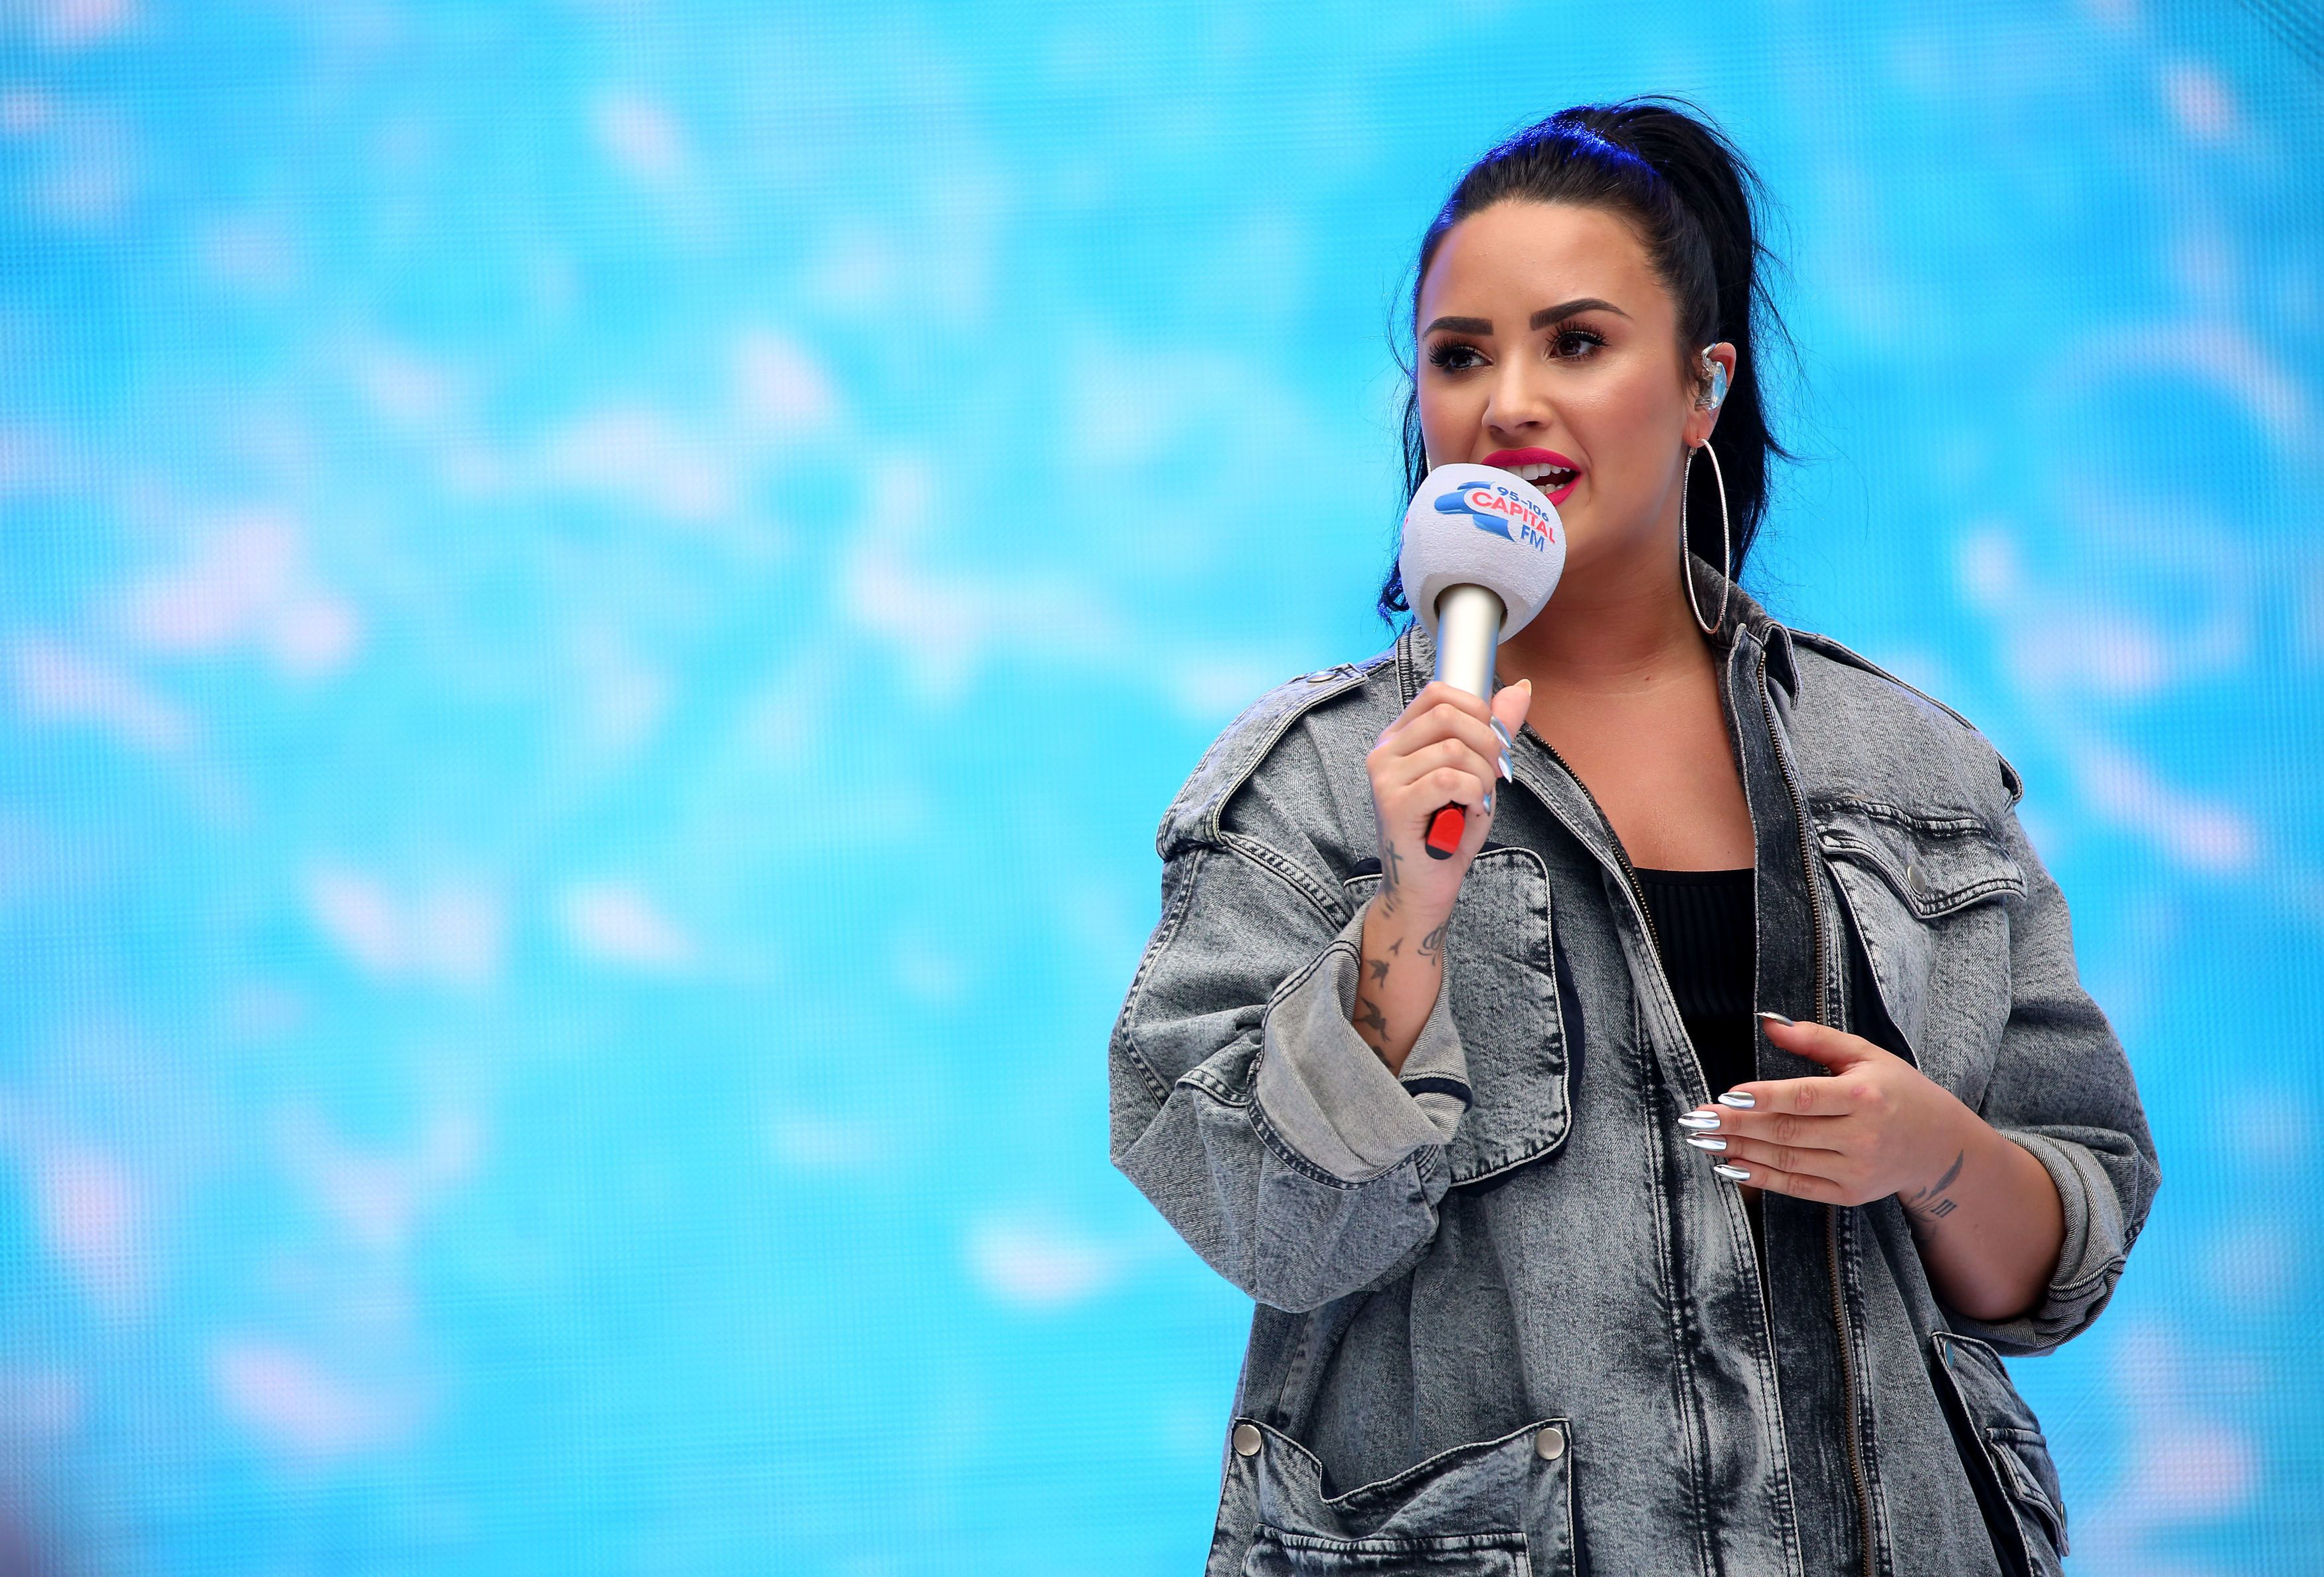 Demi Lovato on stage during Capital's Summertime Ball with Vodafone at Wembley Stadium, London. (Photo by Isabel Infantes/PA Images via Getty Images)